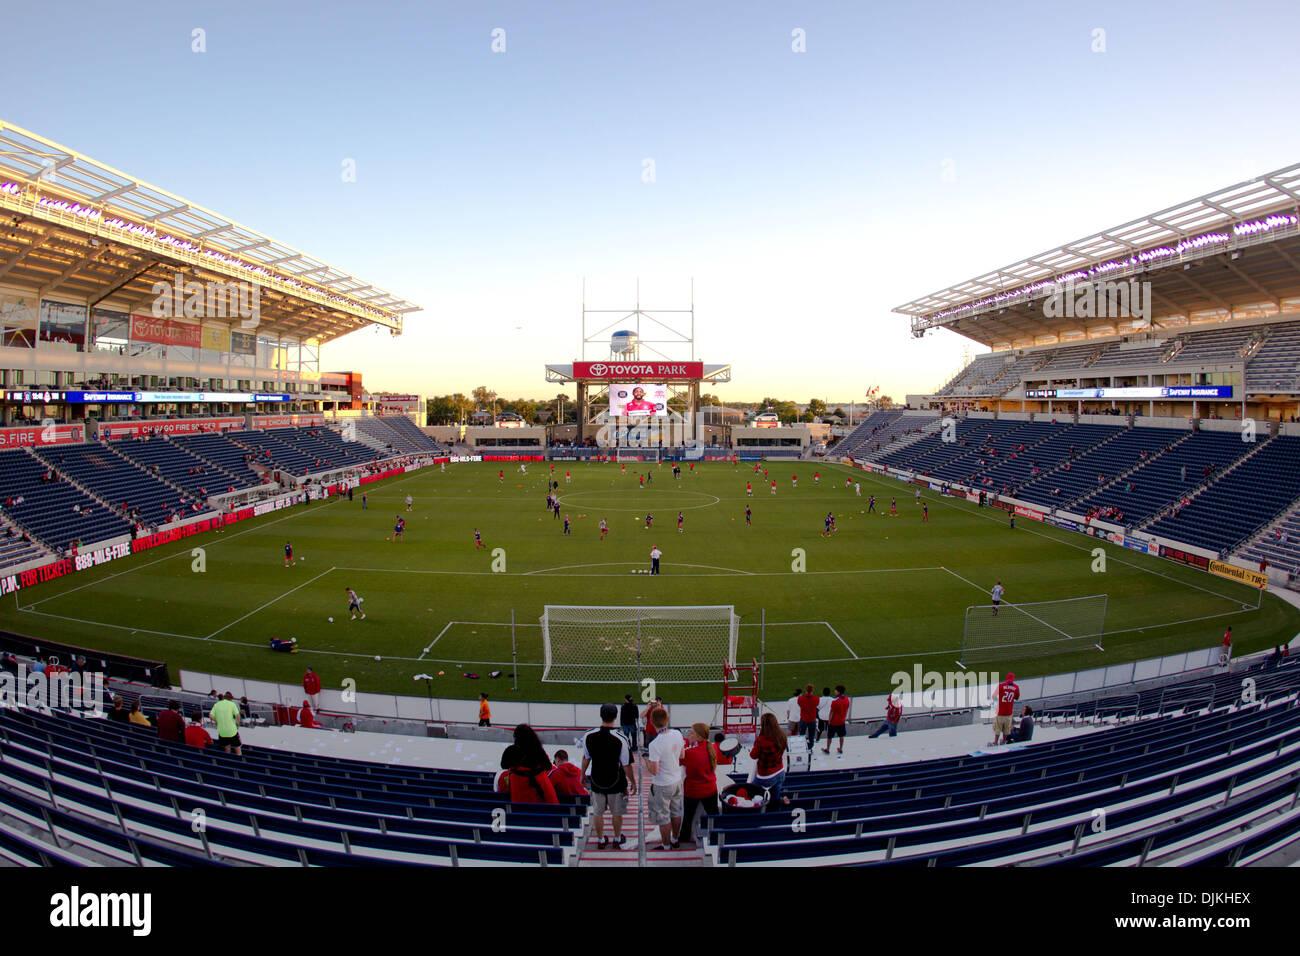 8, 2010   Bridgeview, Illinois, United States Of America   Toyota Park  Before The Start Of The MLS Game Between The Chicago Fire And Toronto FC At  Toyota ...